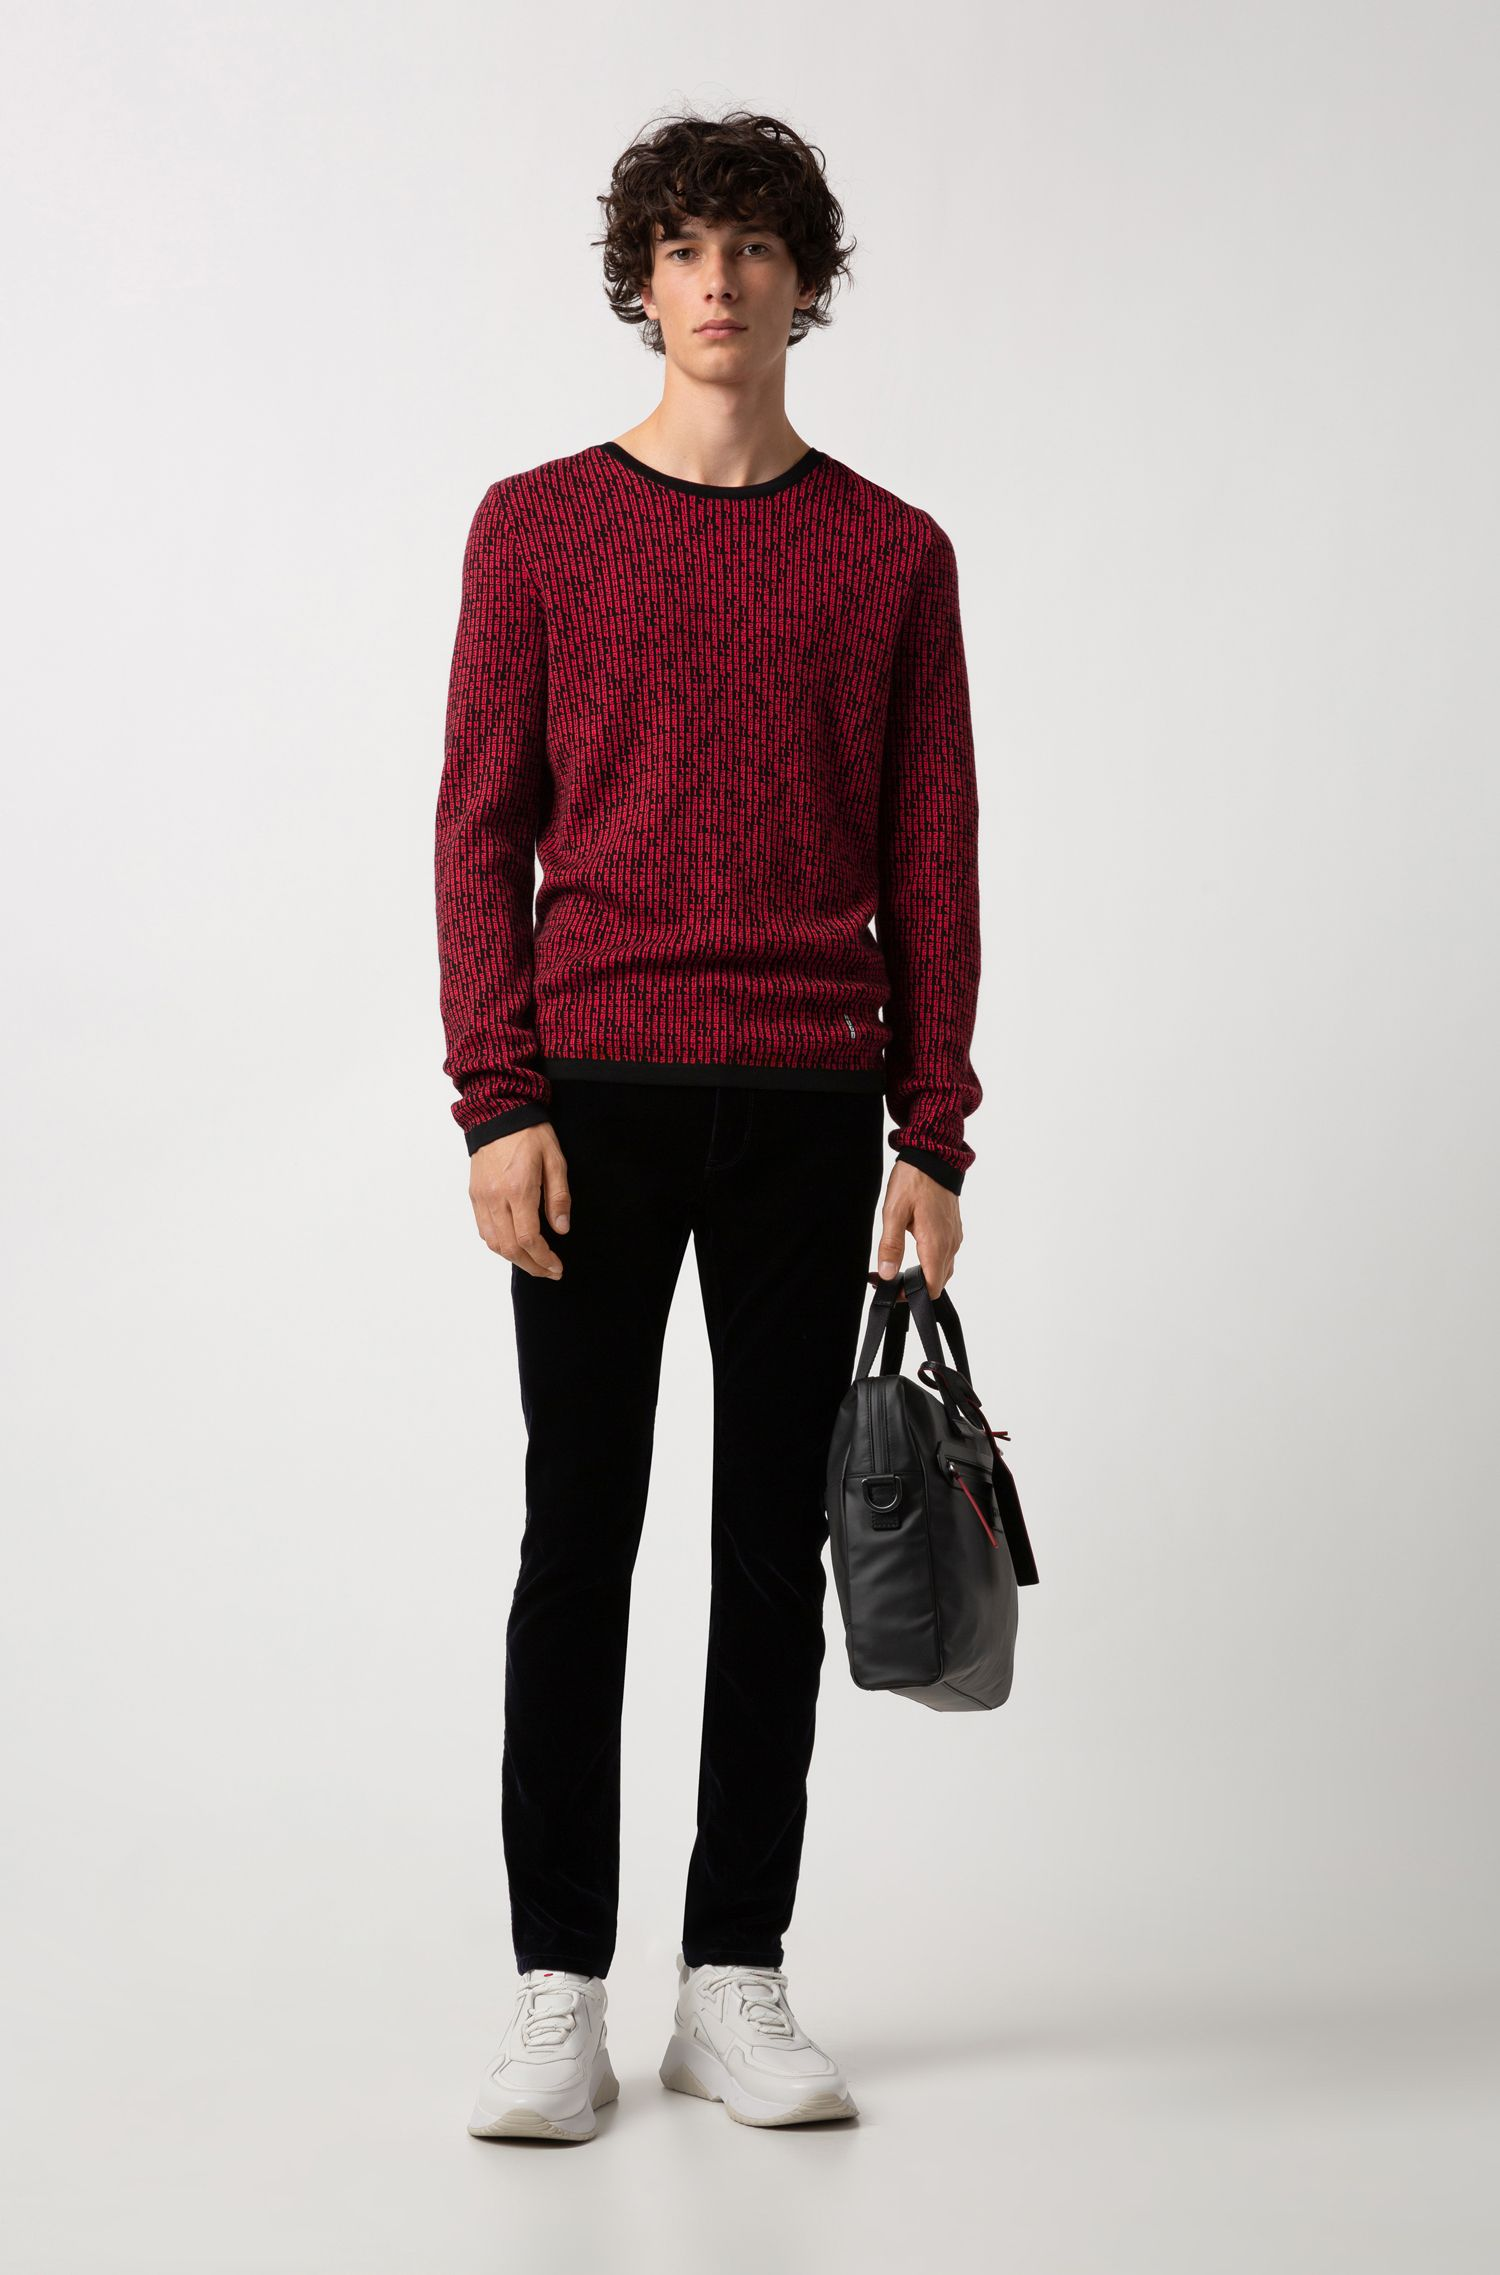 Slim-fit sweater in knitted jacquard with matrix motif, Patterned